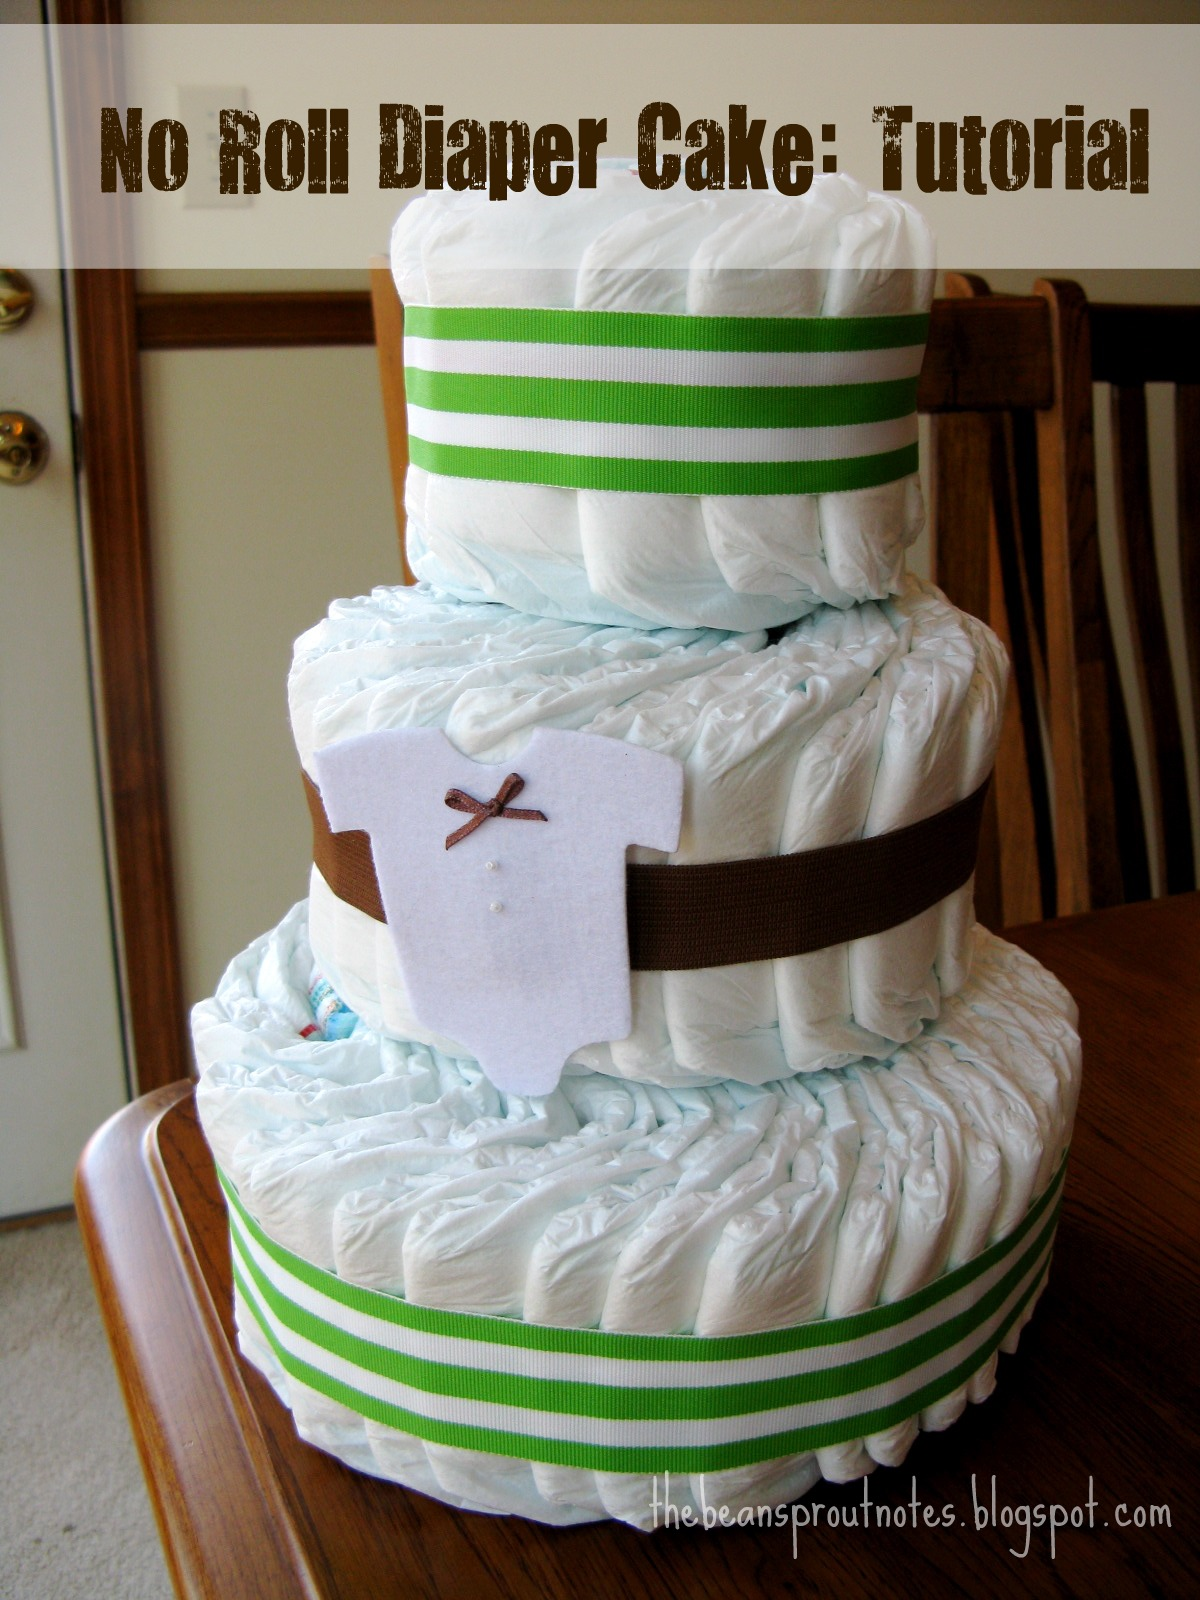 The Bean Sprout Notes No Roll Diaper Cake Tutorial